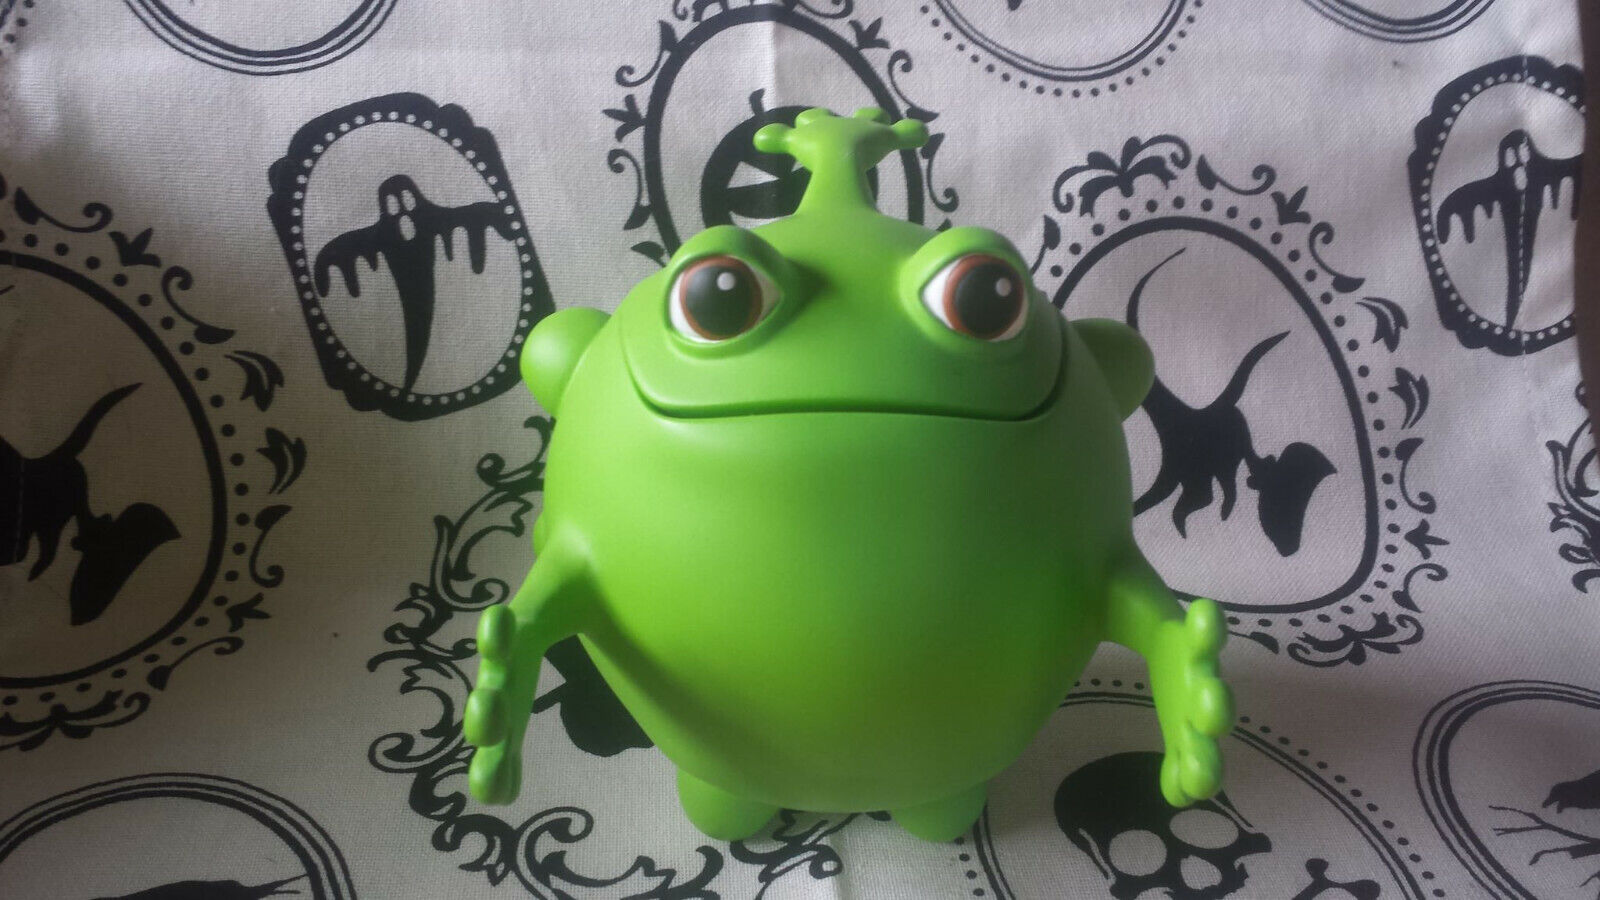 2007 CompatiBalls Froggyball 5  Poly-Resin Figure by Shultzo - Limited to 250